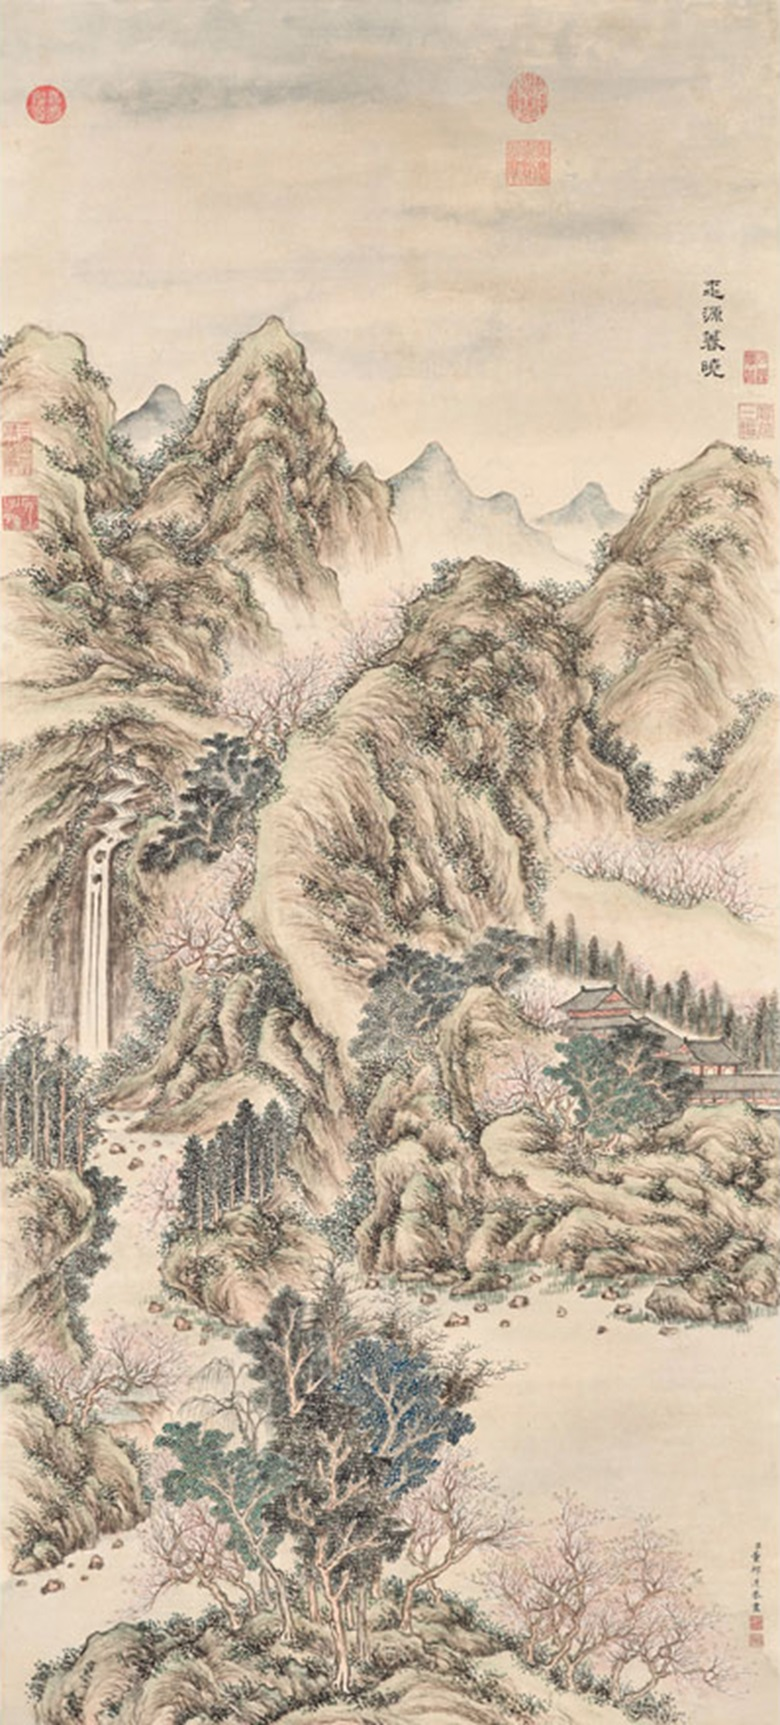 Dong  Bangda (1696-1769), Spring in Peach Blossom Land. Hanging scroll,  ink and colour on paper. 144.5 x 65 cm (56⅞ x 25⅝ in). Signed, with two seals  of the artist. Seven imperial collectors'  seals four of Emperor Qianlong and three of Emperor Jiaqing (1760-1820).  Estimate HK$7,000,000-9,000,000  $910,000-1,165,000. This work is offered in  Fine Chinese Classical Paintings and